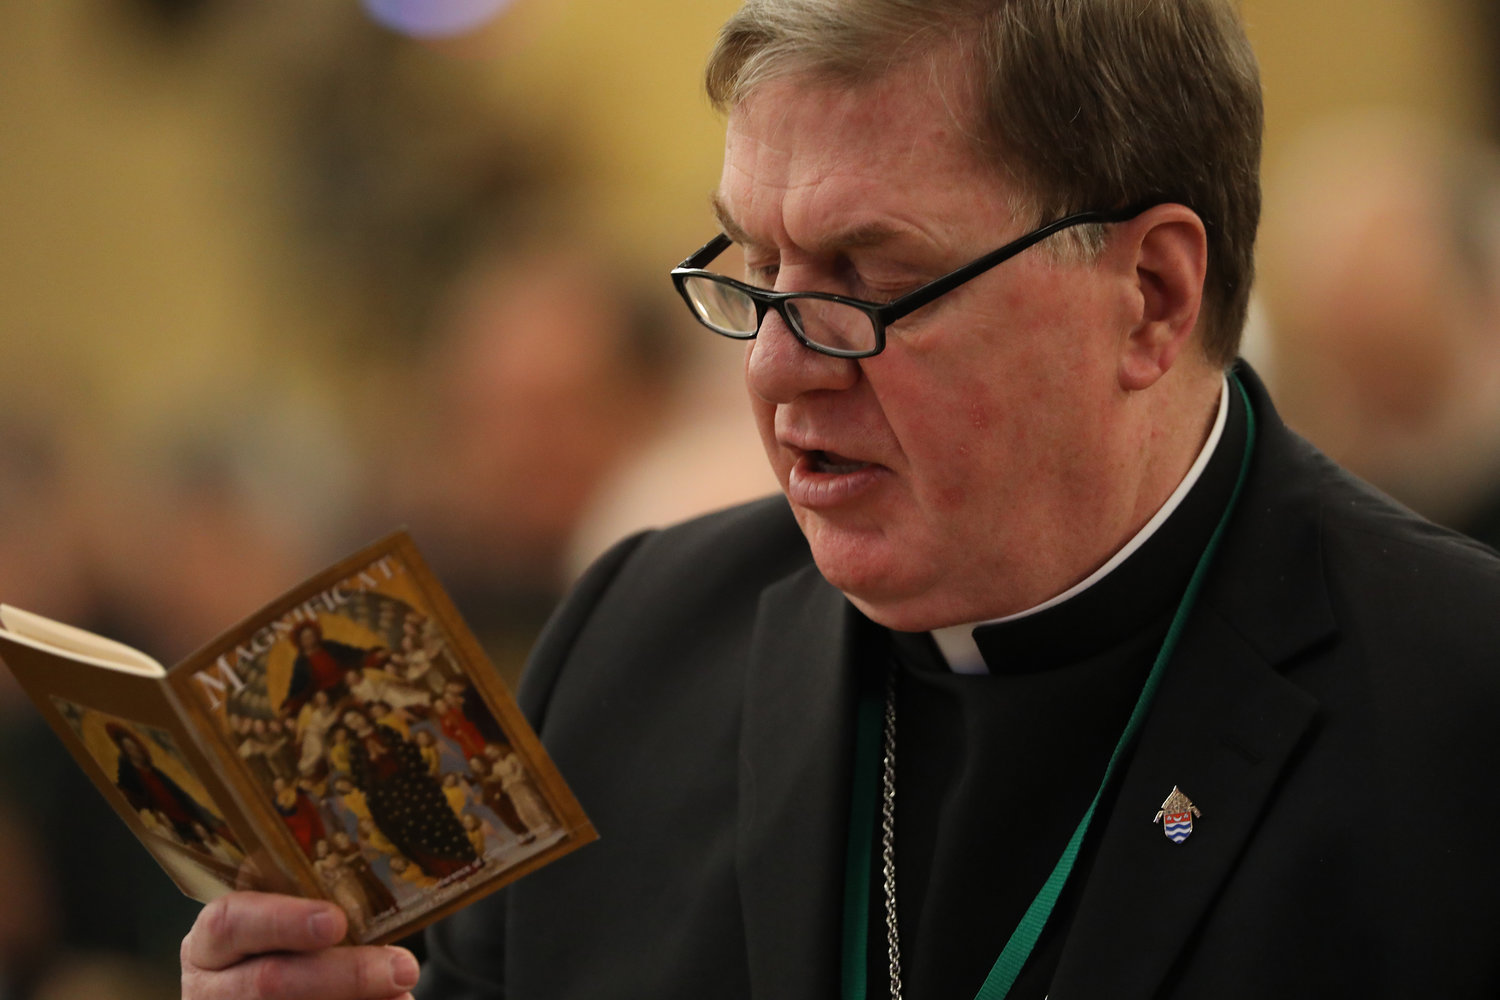 Cardinal Joseph W. Tobin of Newark, N.J., is seen during opening prayer on the first day of the annual general assembly of the USCCB in Baltimore June 11, 2019.